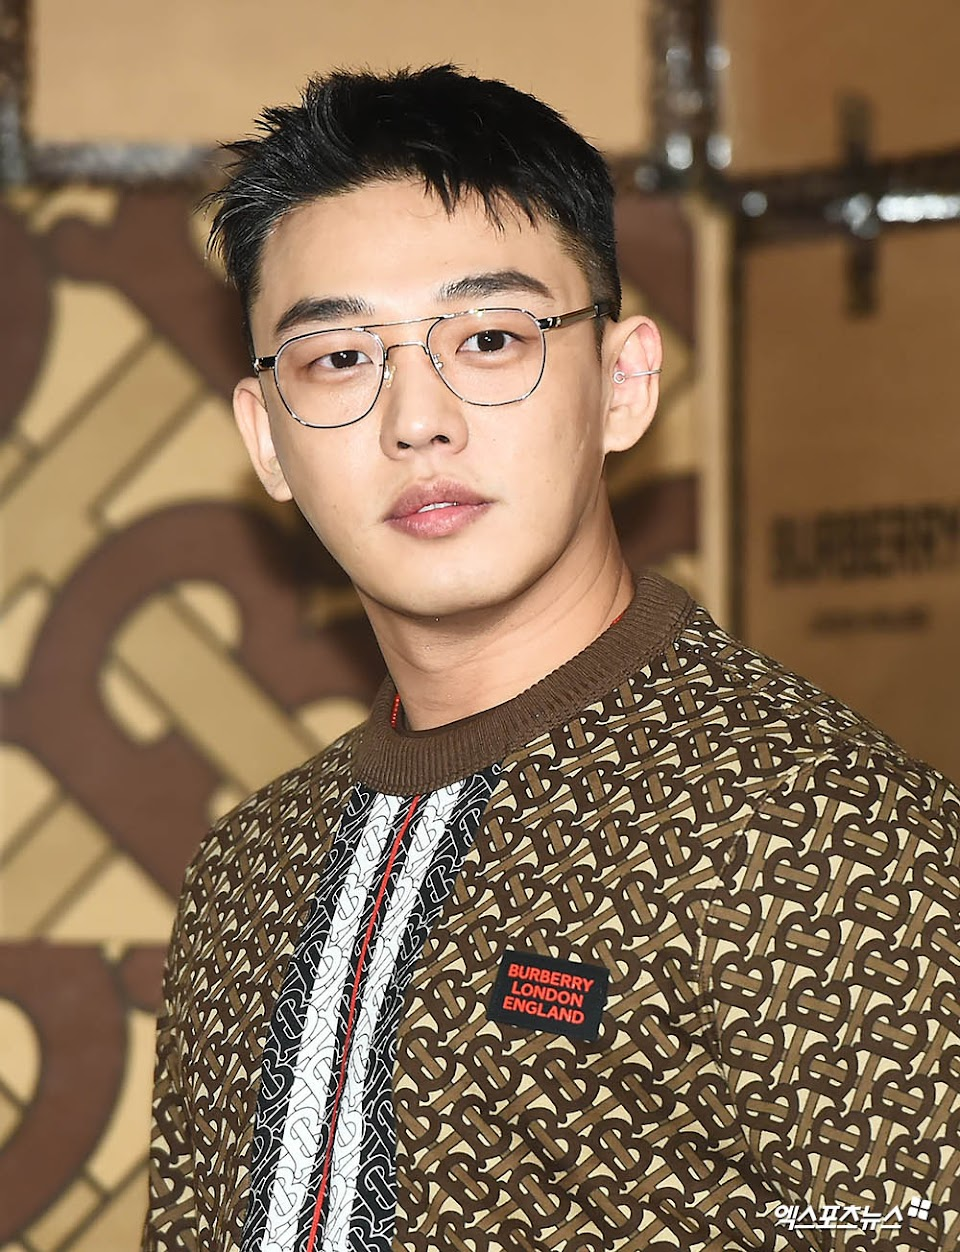 yoo ah in shaved head new photo 2